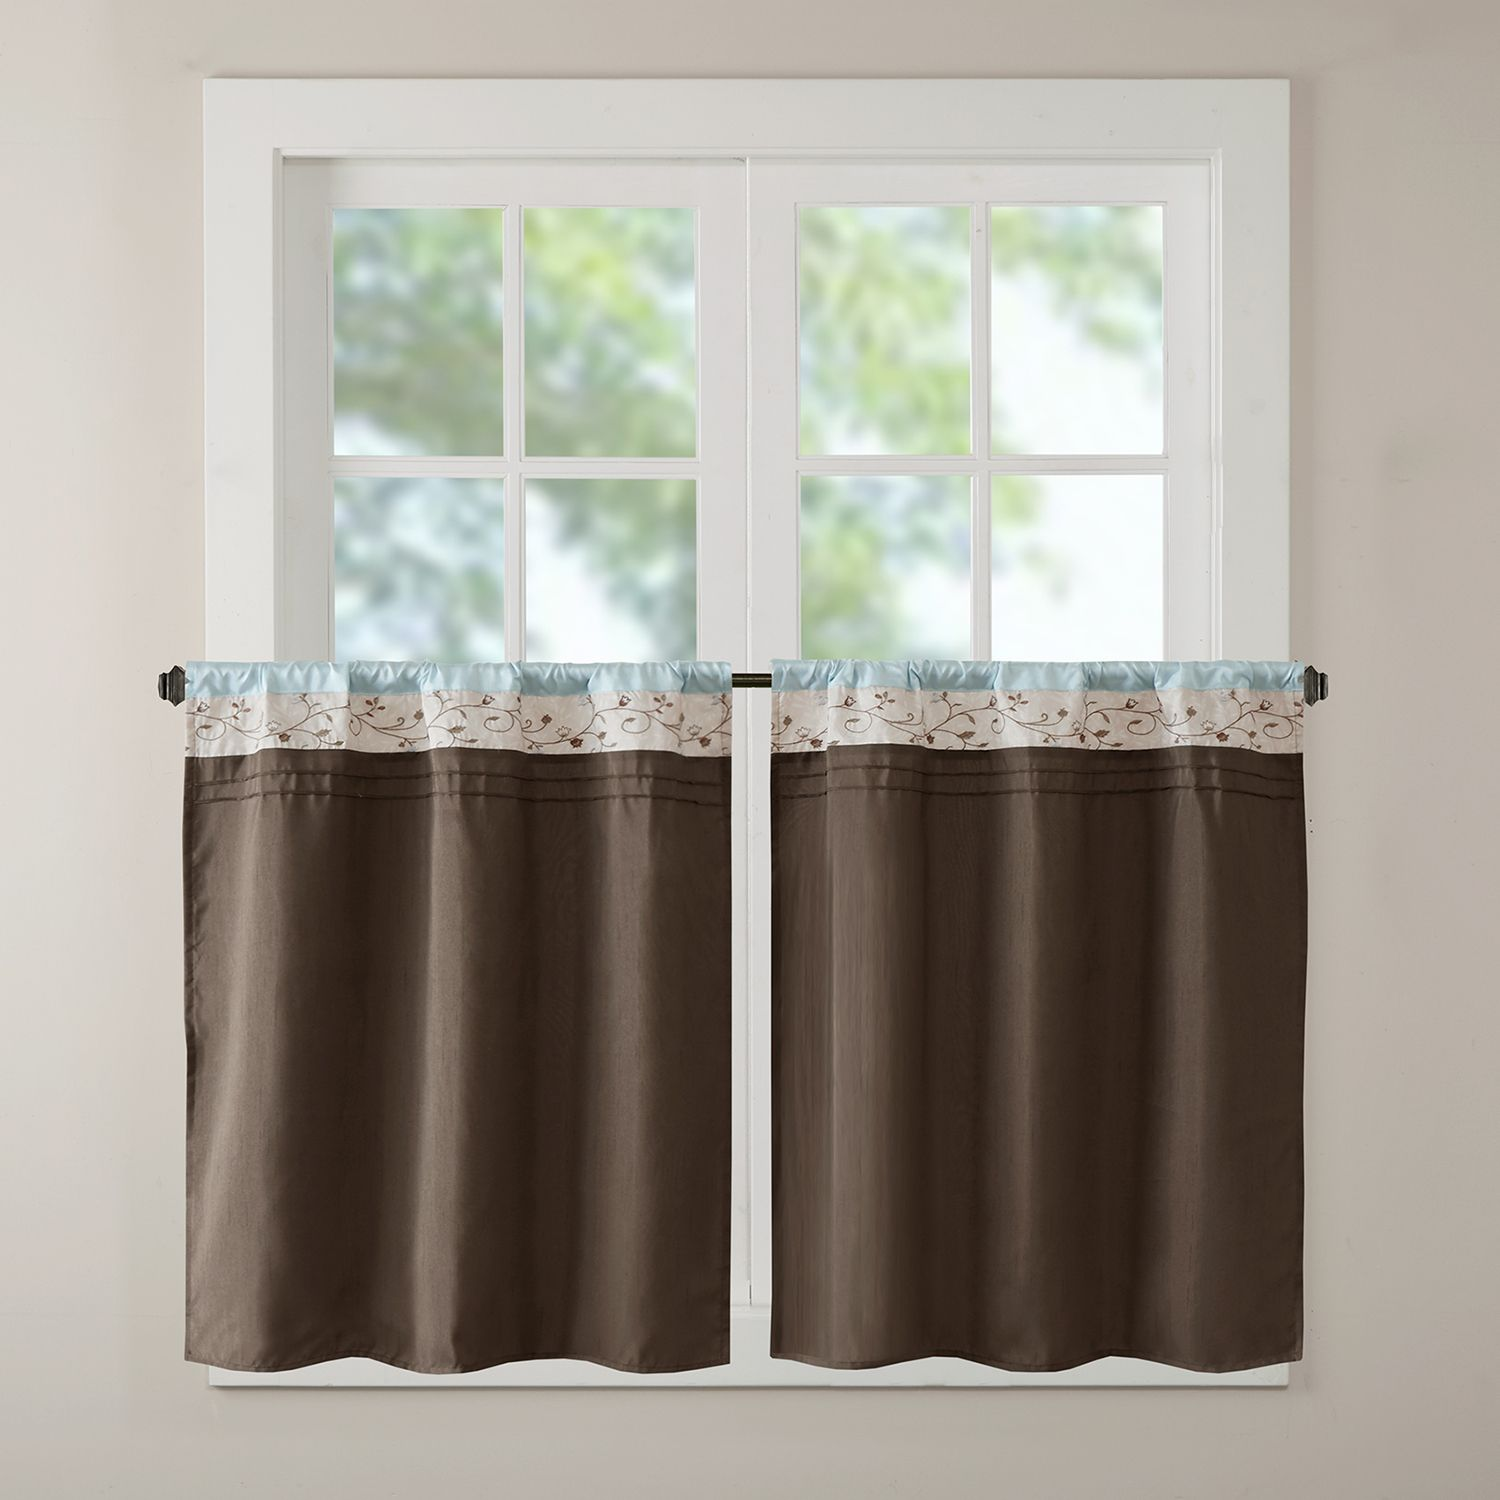 Superieur Madison Park Serene Embroidered 2 Pack Tier Kitchen Window Curtain